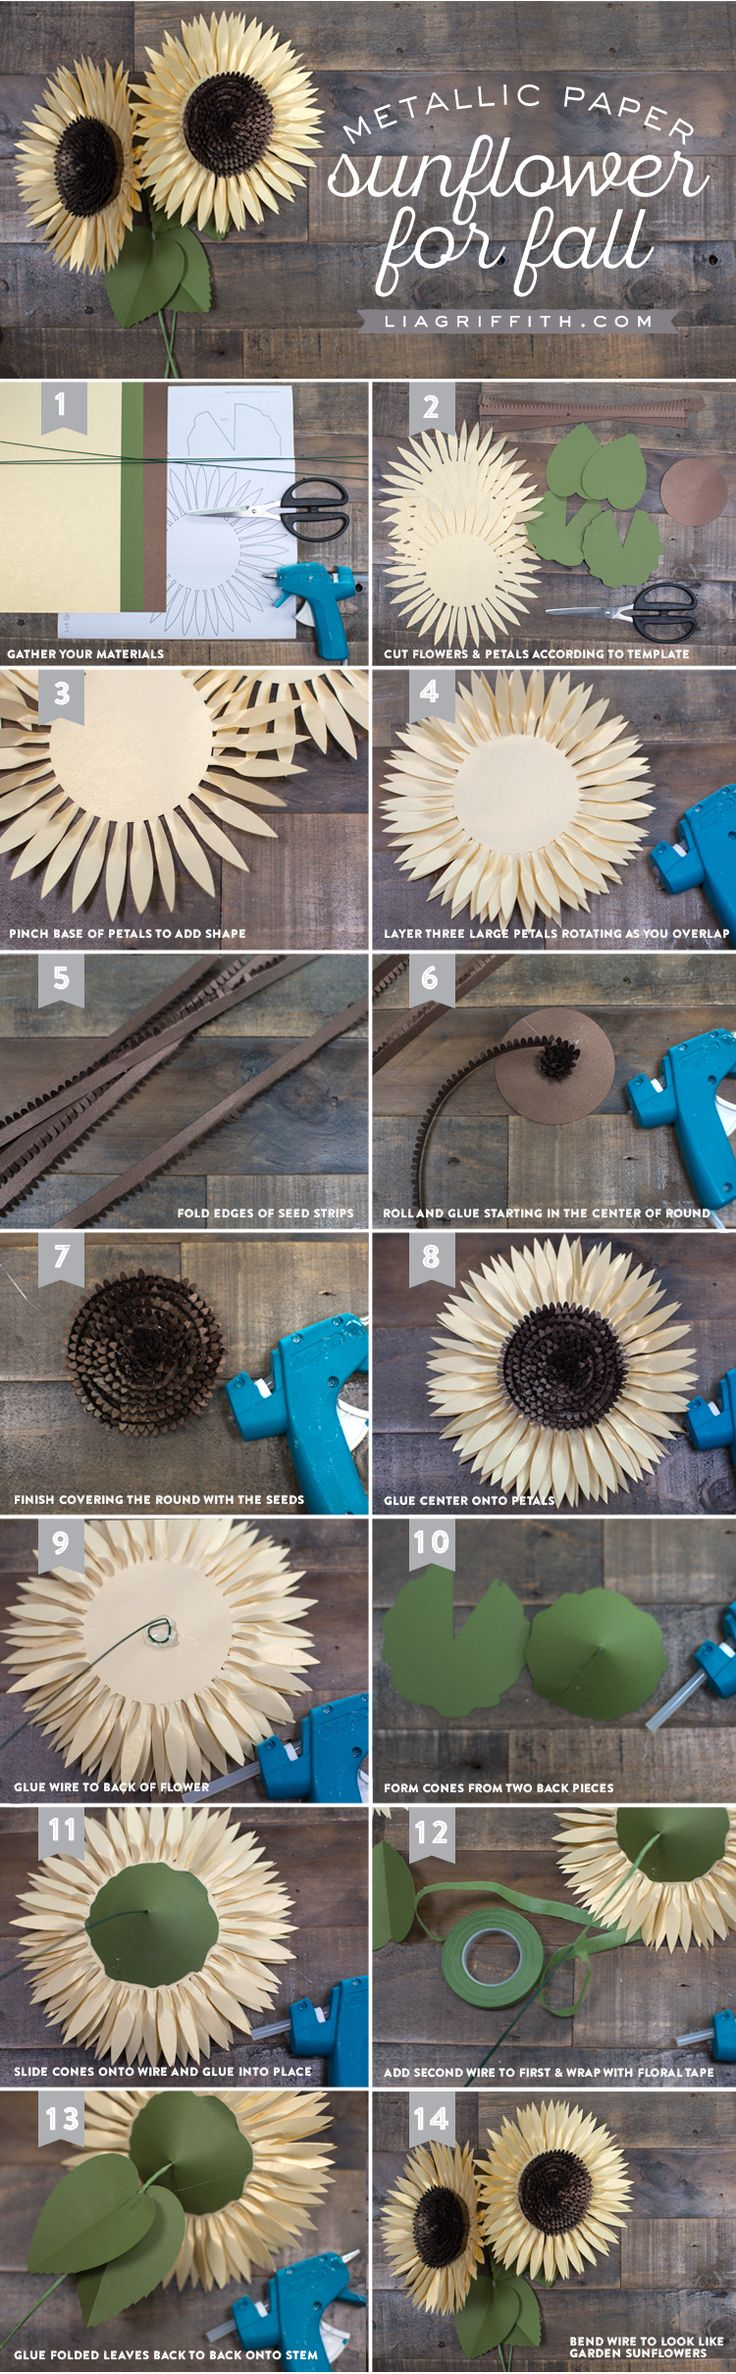 Make your own striking paper sunflower with this downloadable pattern and step-by-step tutorial from handcrafted lifestyle expert Lia Griffith.